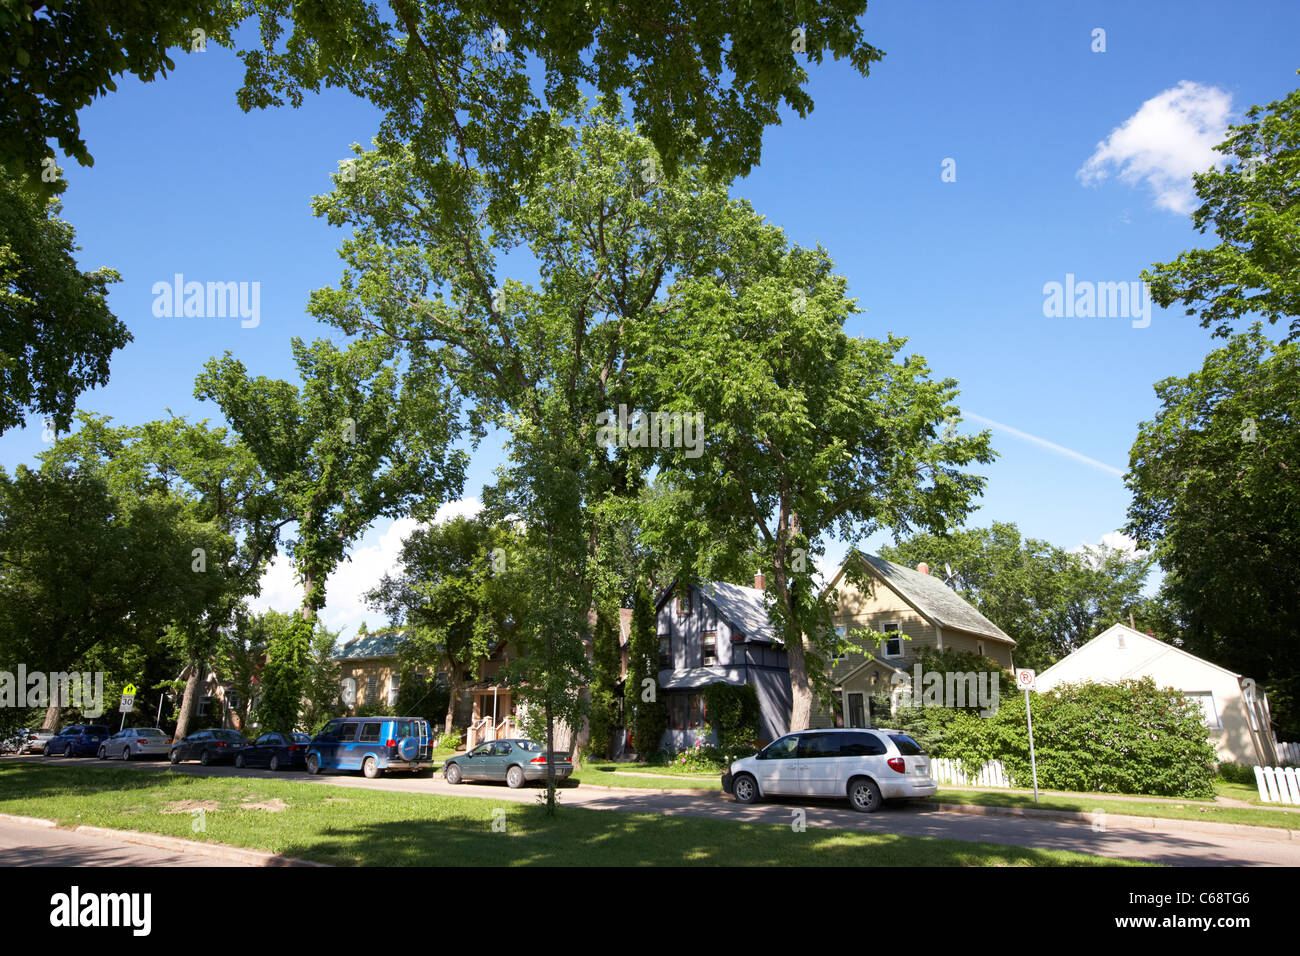 residential neighbourhood on tree lined avenue in city of Saskatoon Saskatchewan Canada - Stock Image